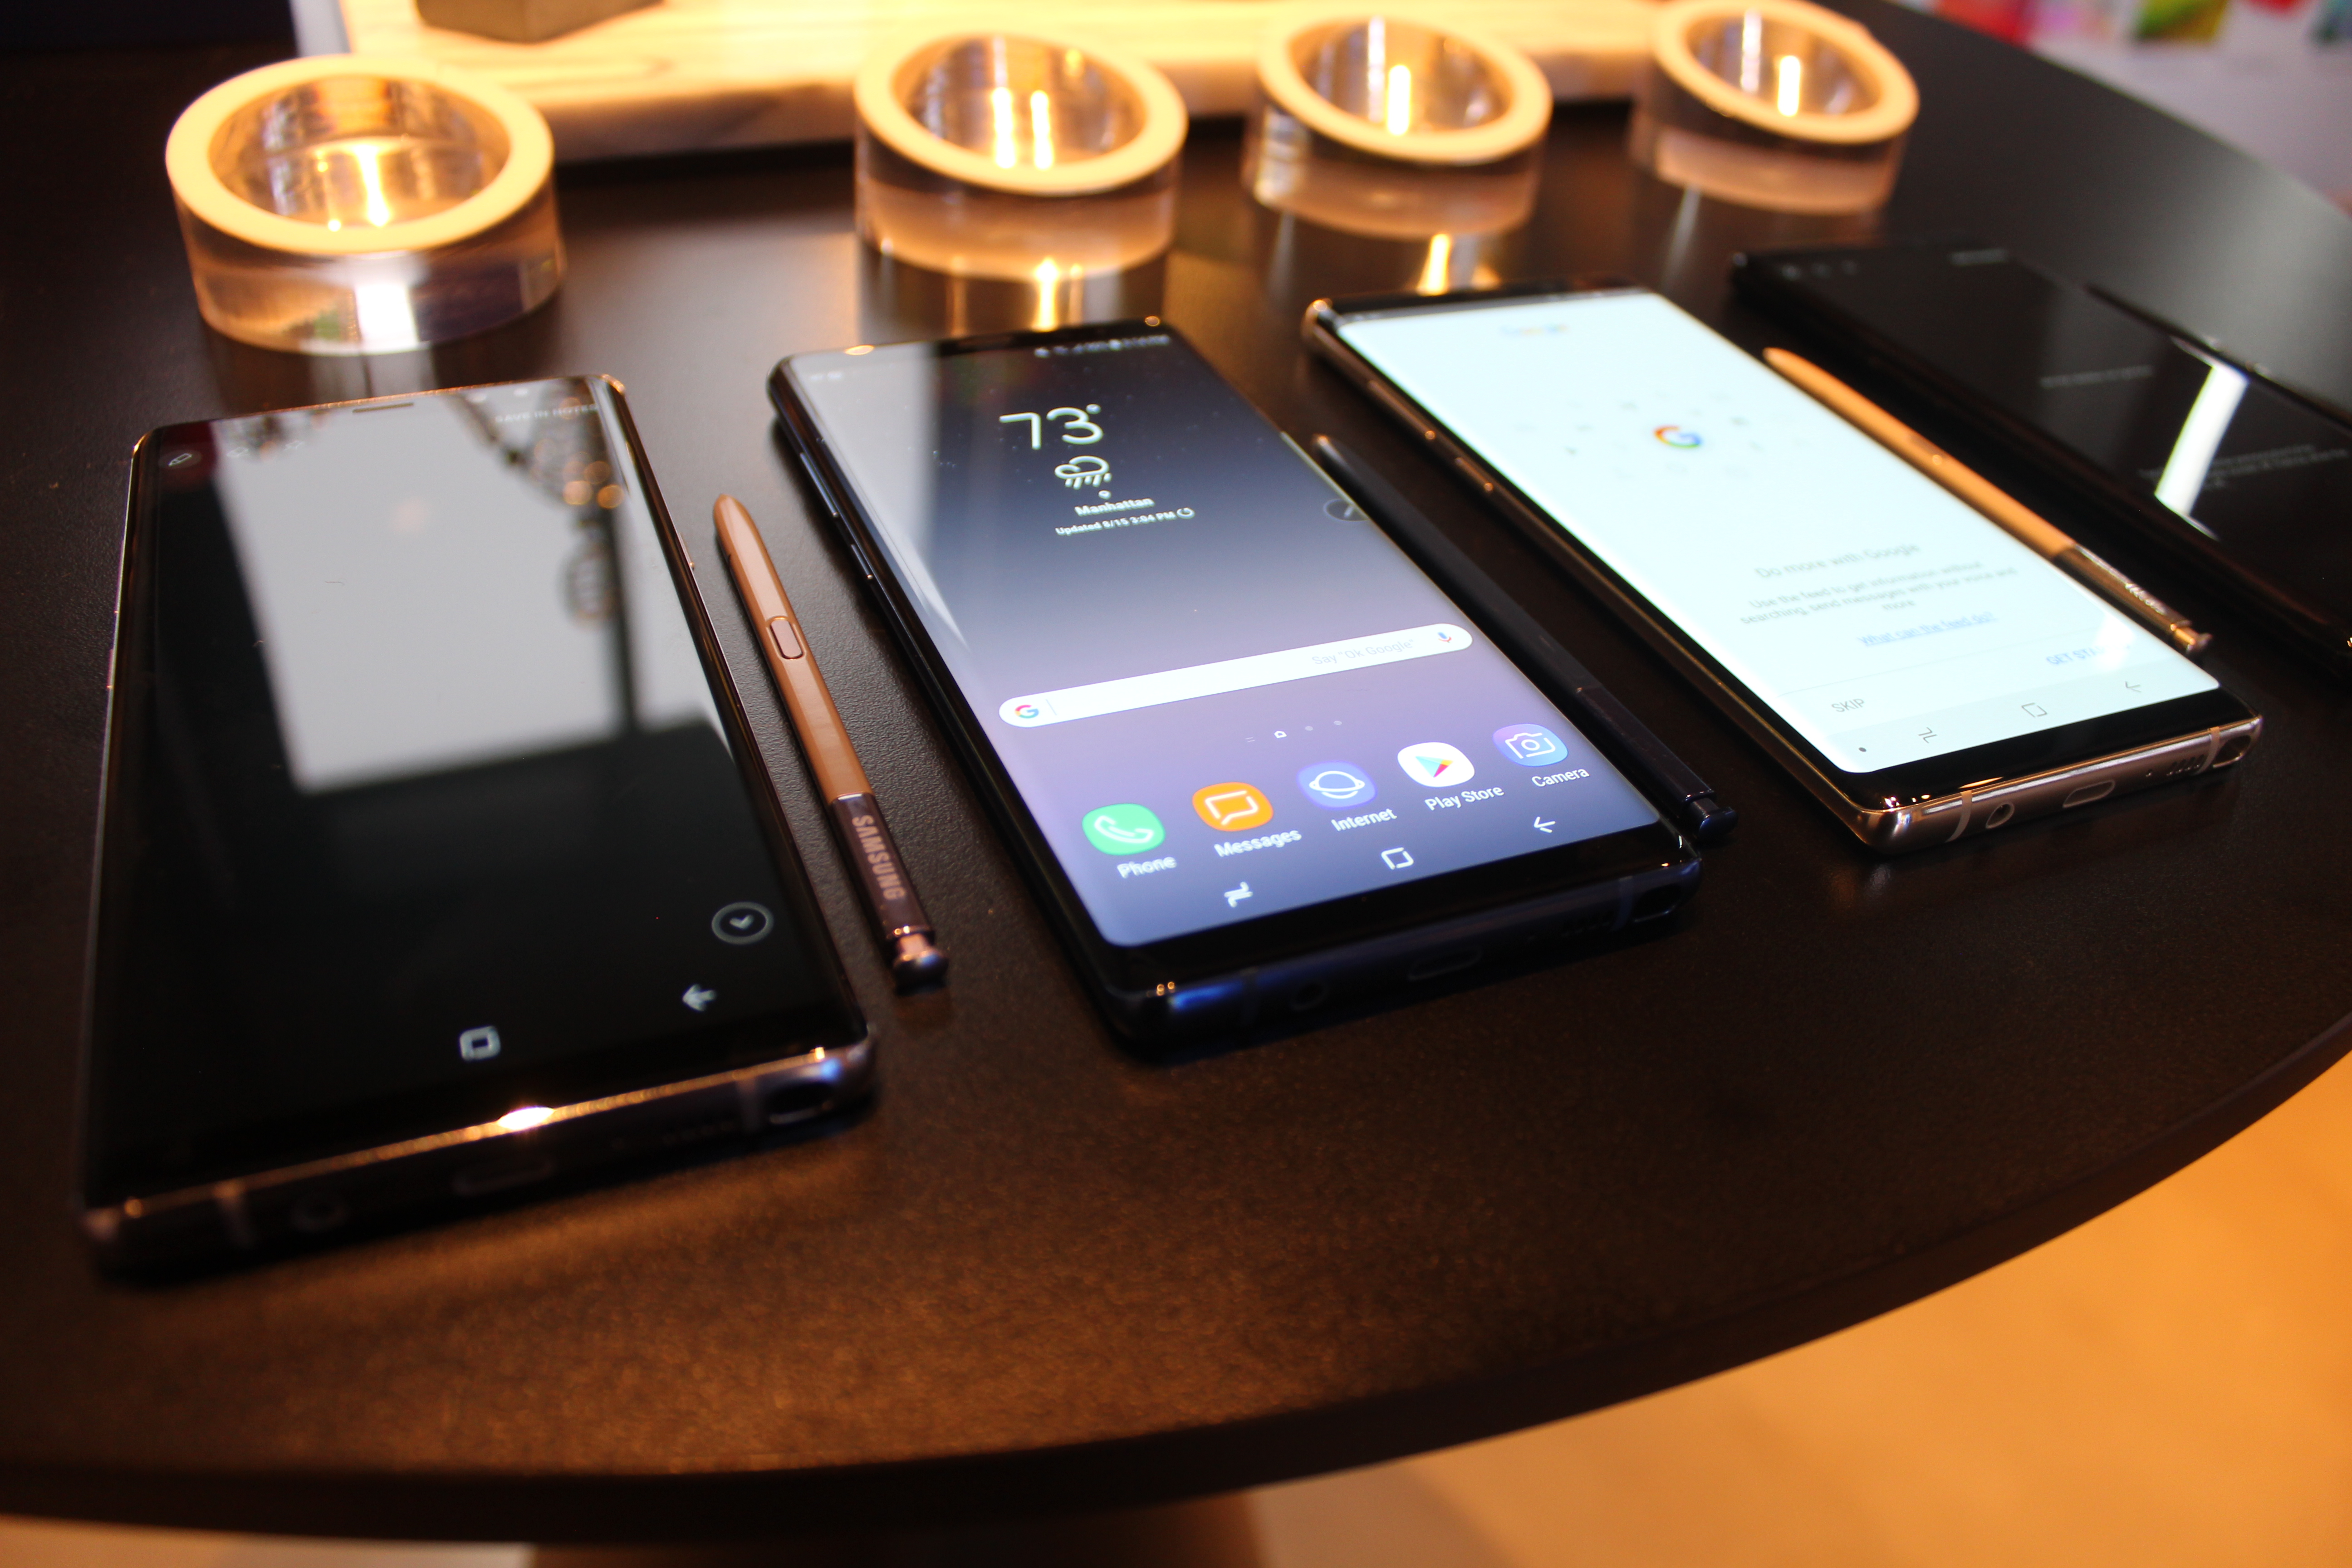 Samsung Galaxy Note 8 Release Price And Specs Hands On